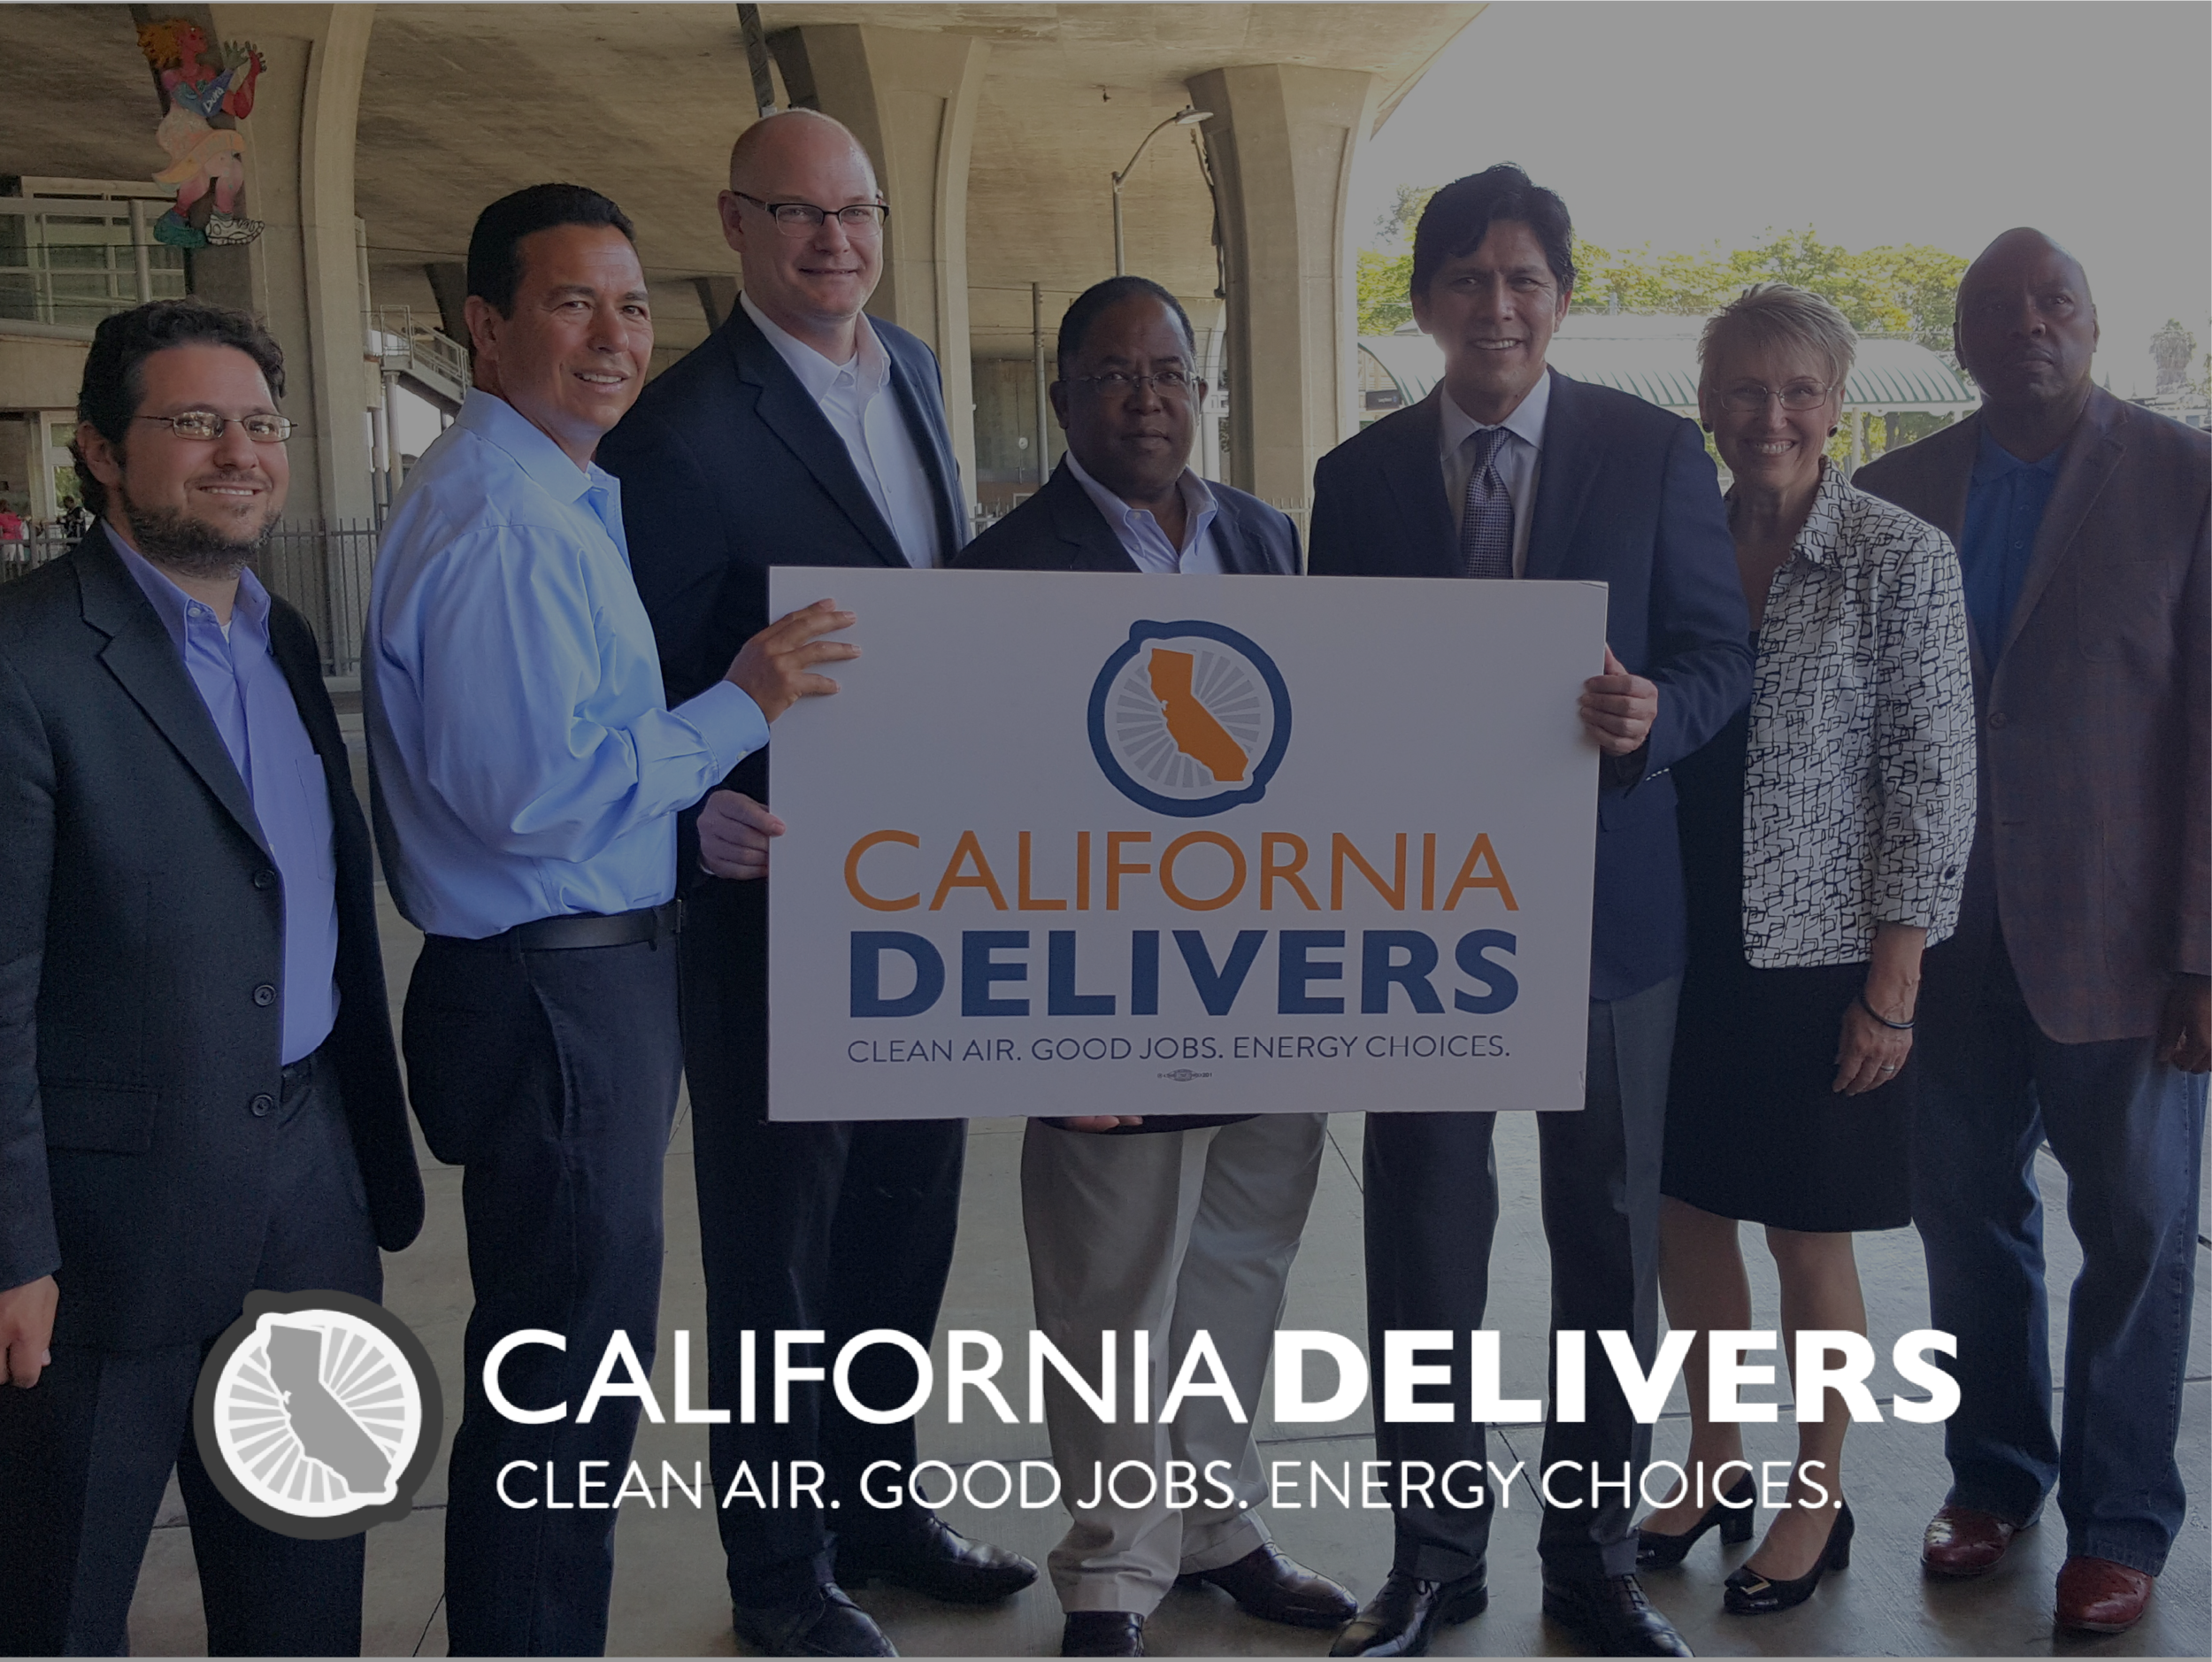 COALITION - Created California Delivers, a broad, diverse coalition focused on protecting, strengthening, and implementing the benefits of California's climate and clean energy programs for all Californians